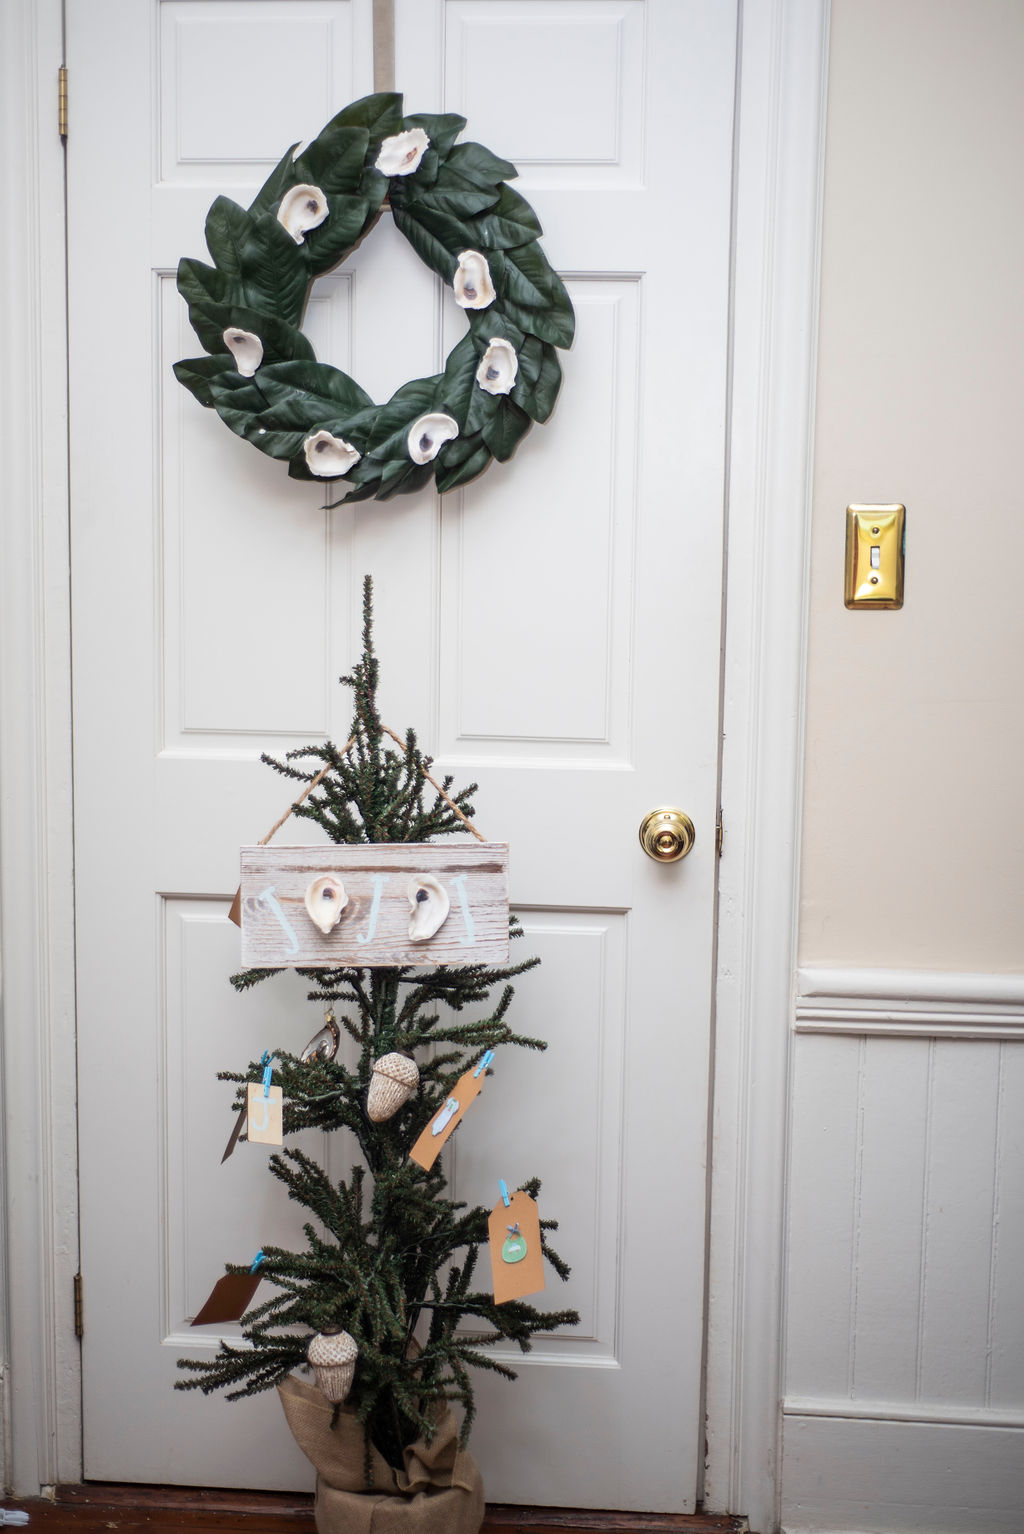 DSC_2445 Lowcountry Christmas: Oyster and Gullah Inspired Decor